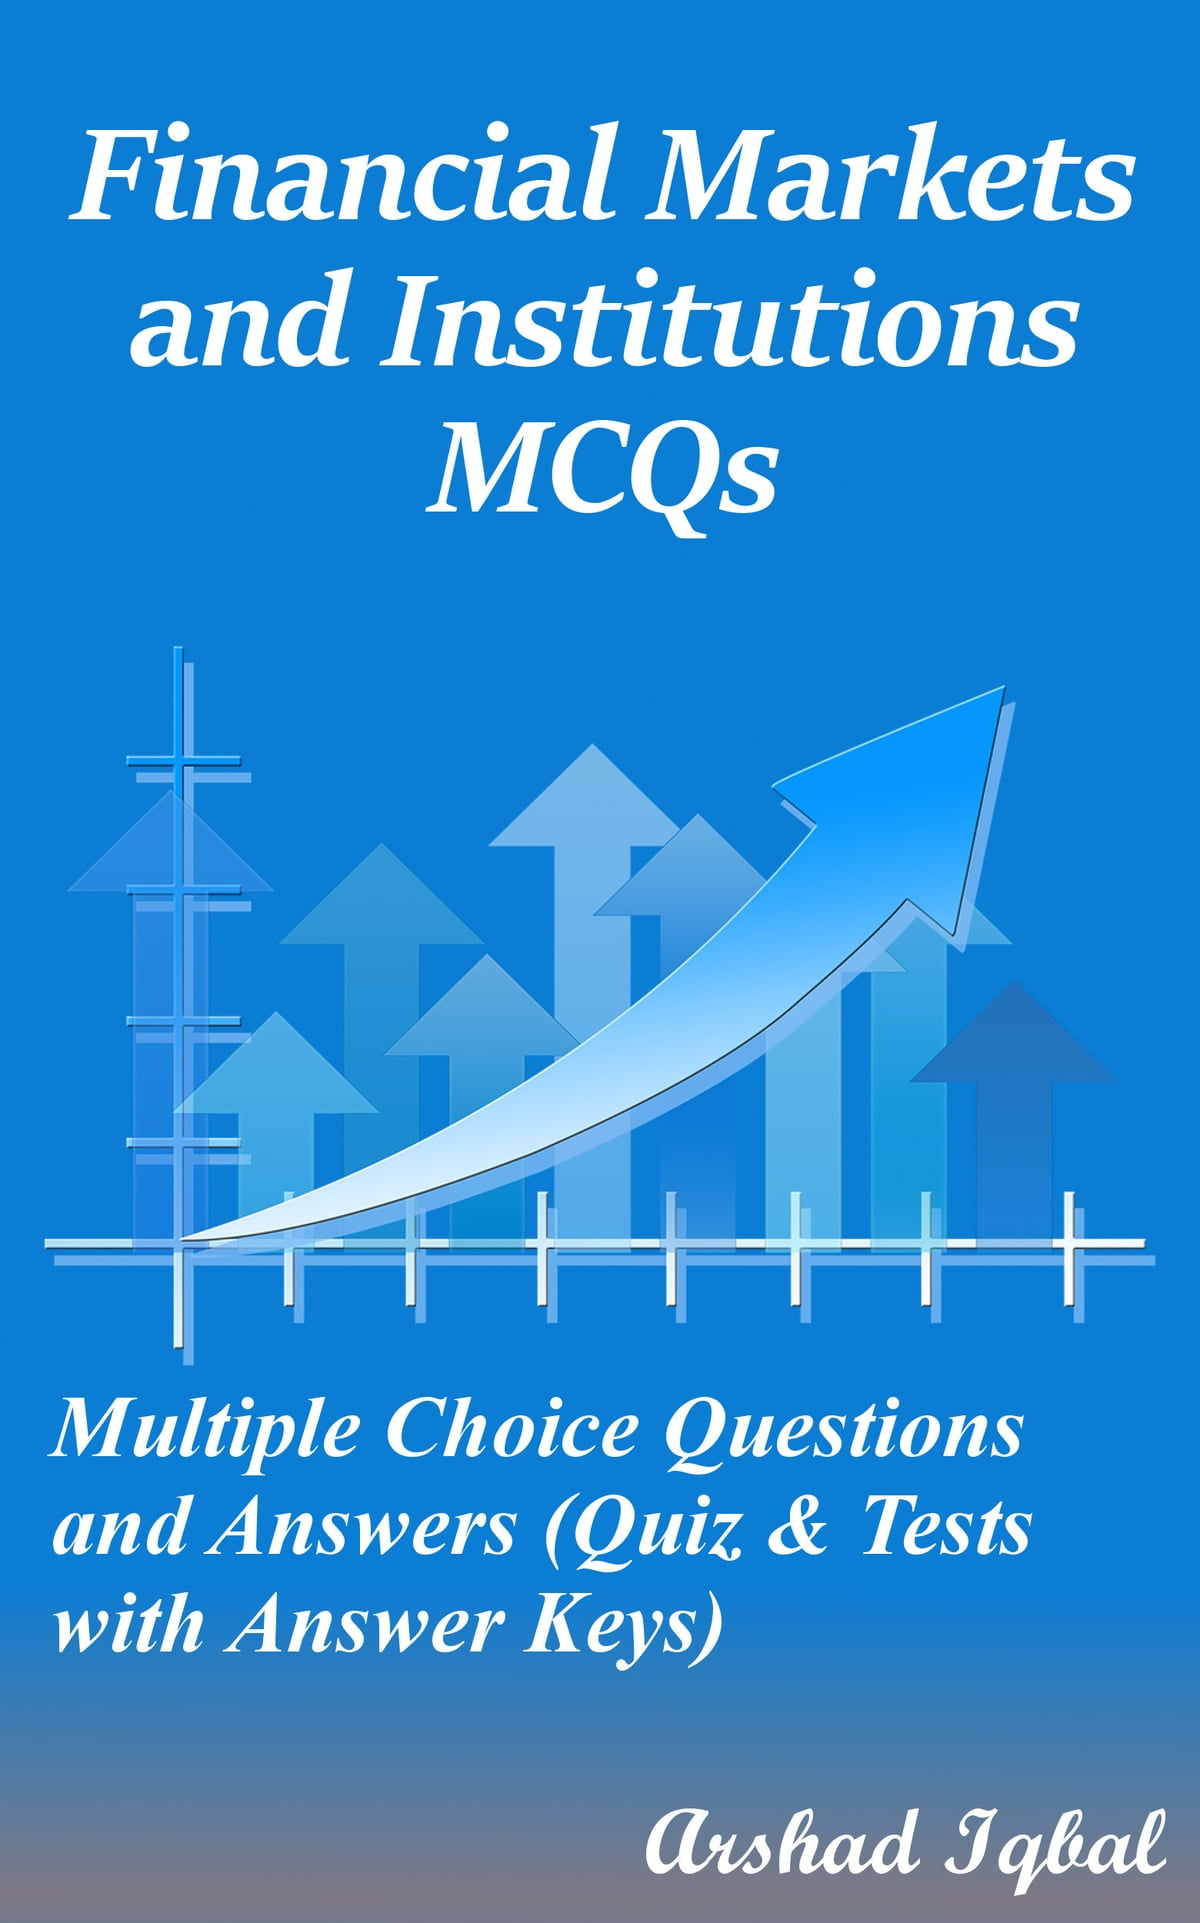 Financial Markets and Institutions MCQs: Multiple Choice Questions and  Answers (Quiz & Tests with Answer Keys) ebook by Arshad Iqbal - Rakuten Kobo